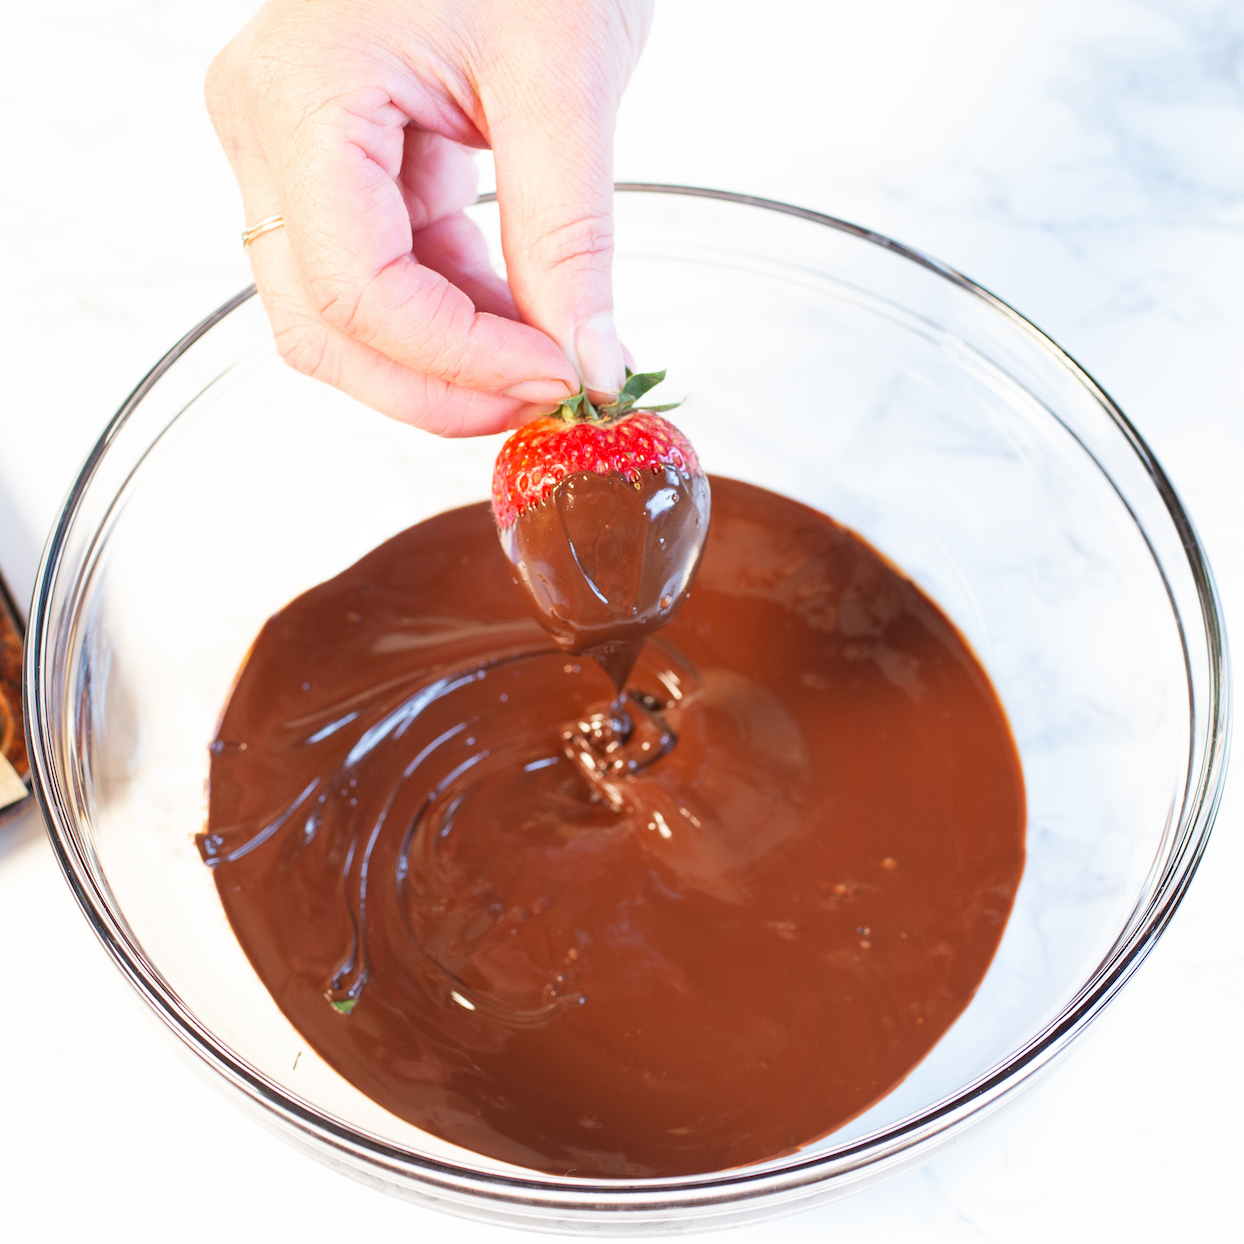 dipping strawberry in chocolate